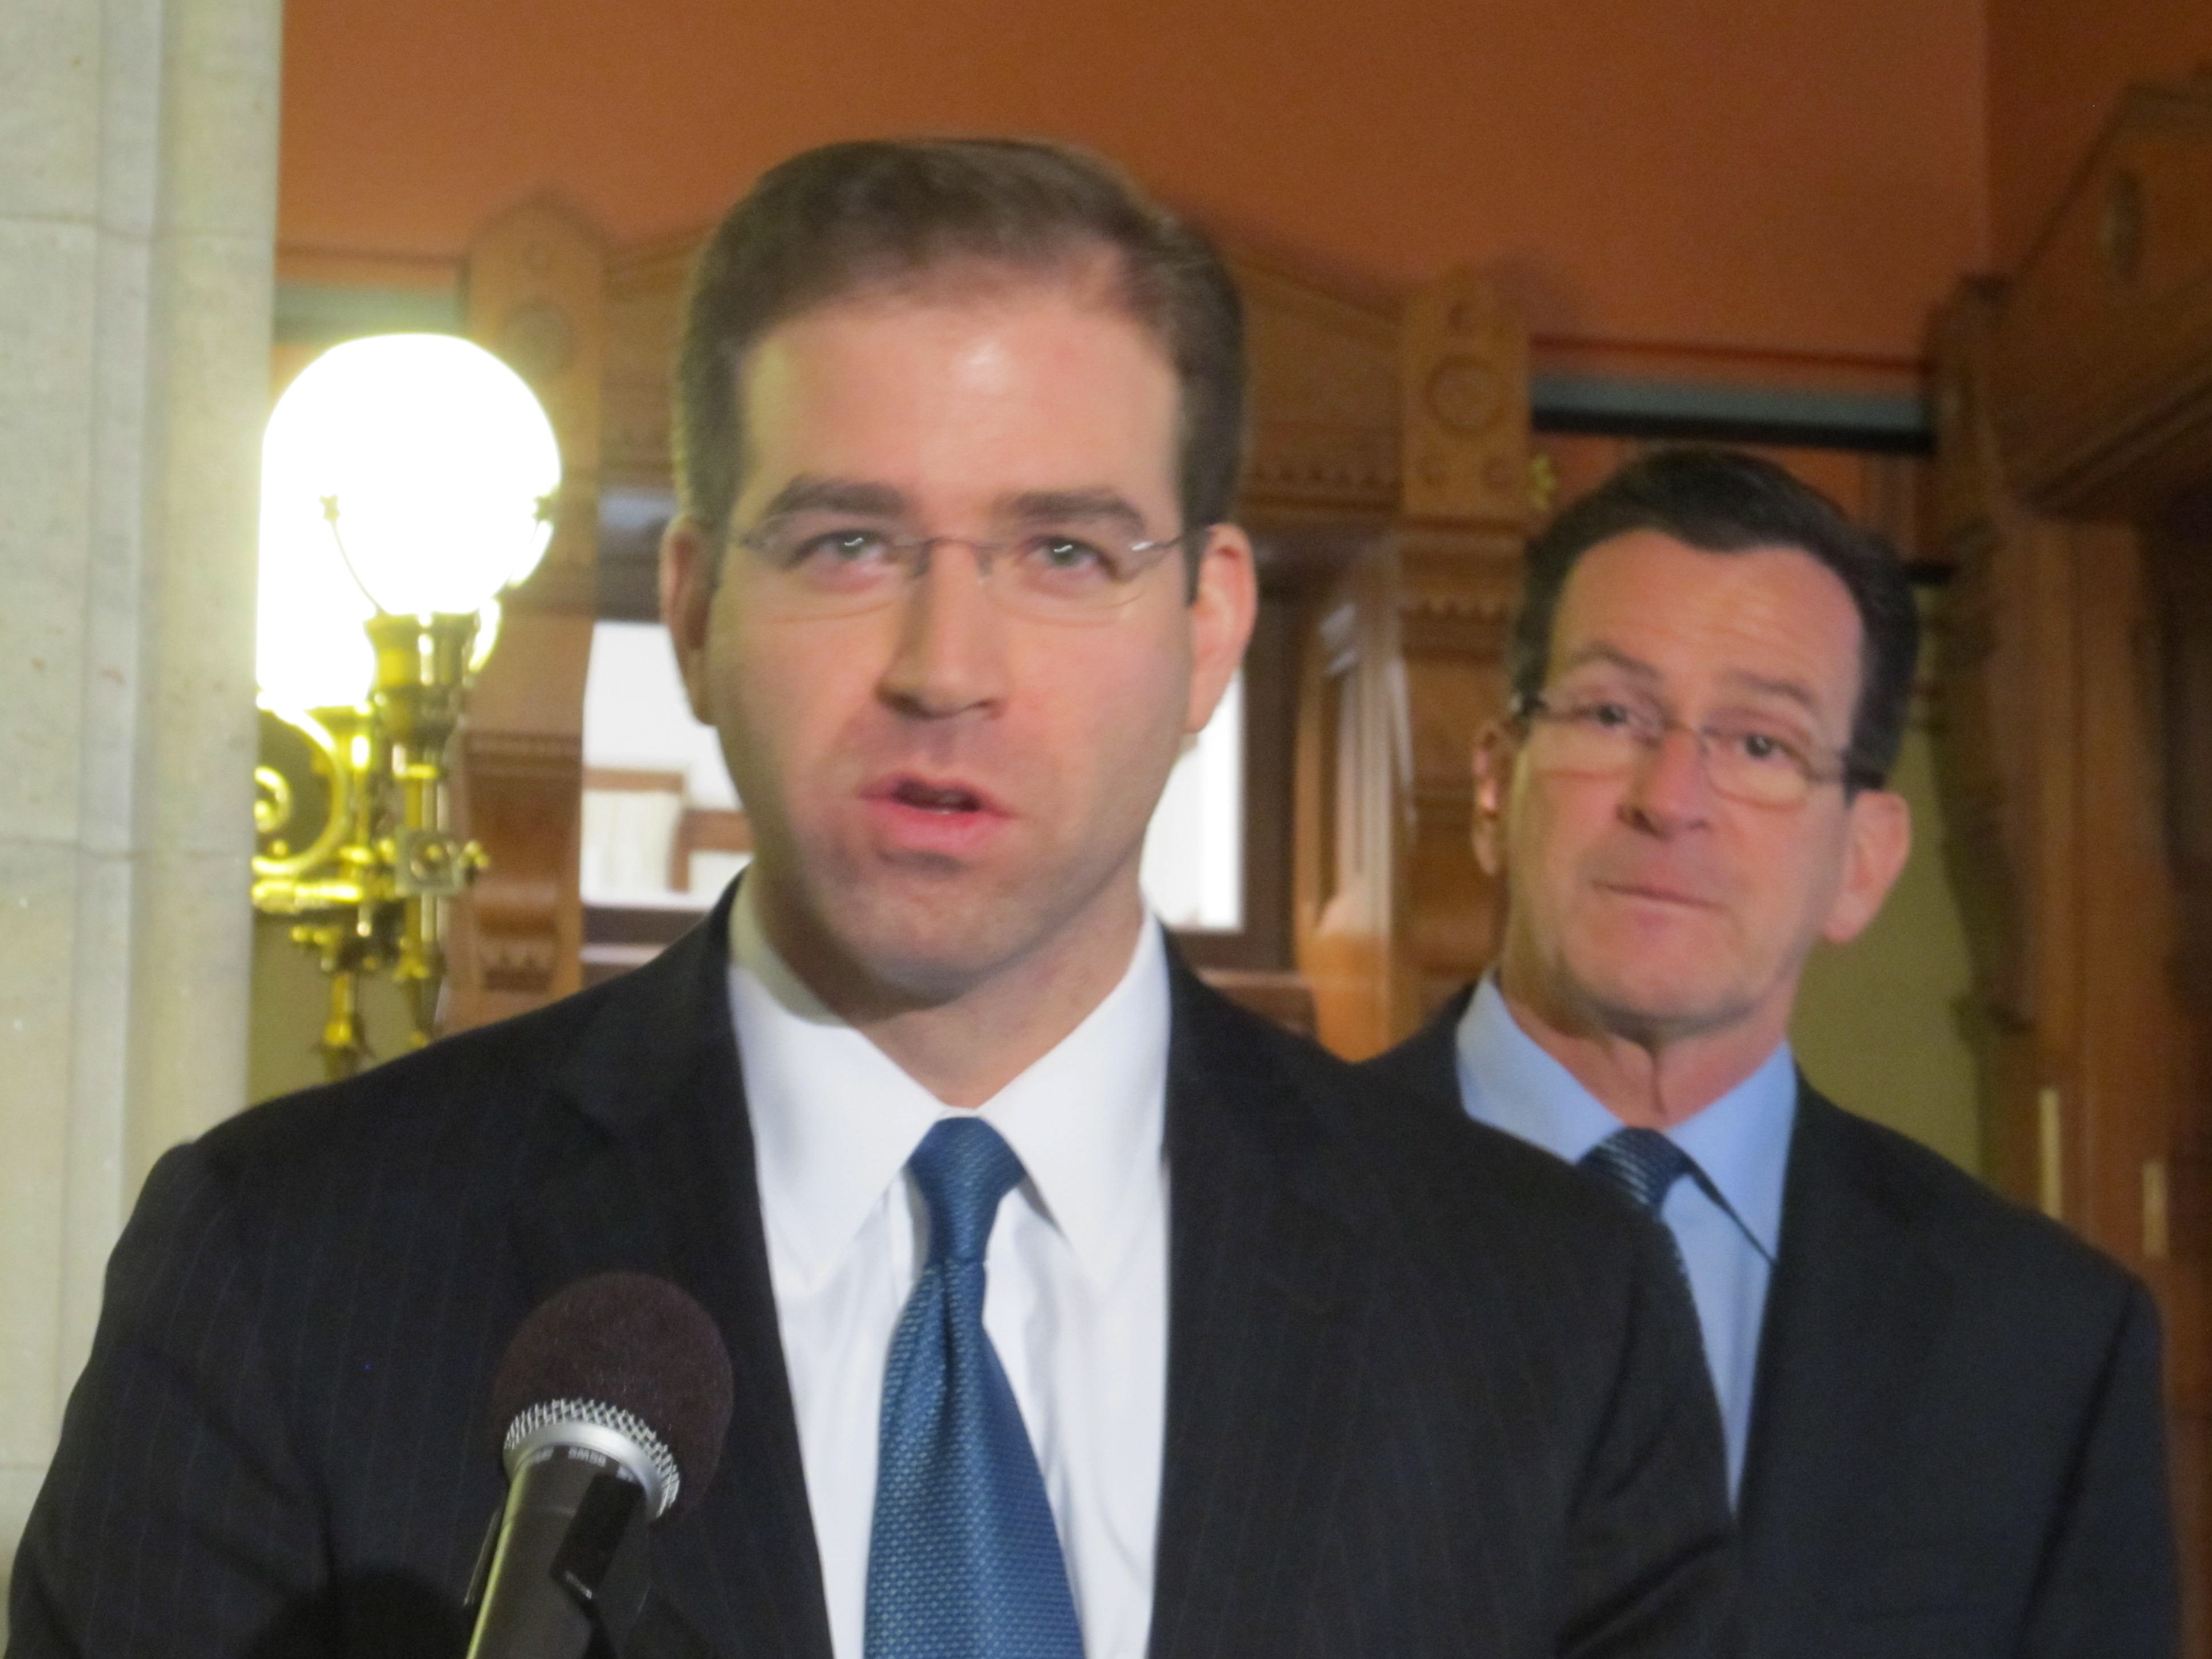 Luke Bronin with Gov. Dannel P. Malloy in January 2013.